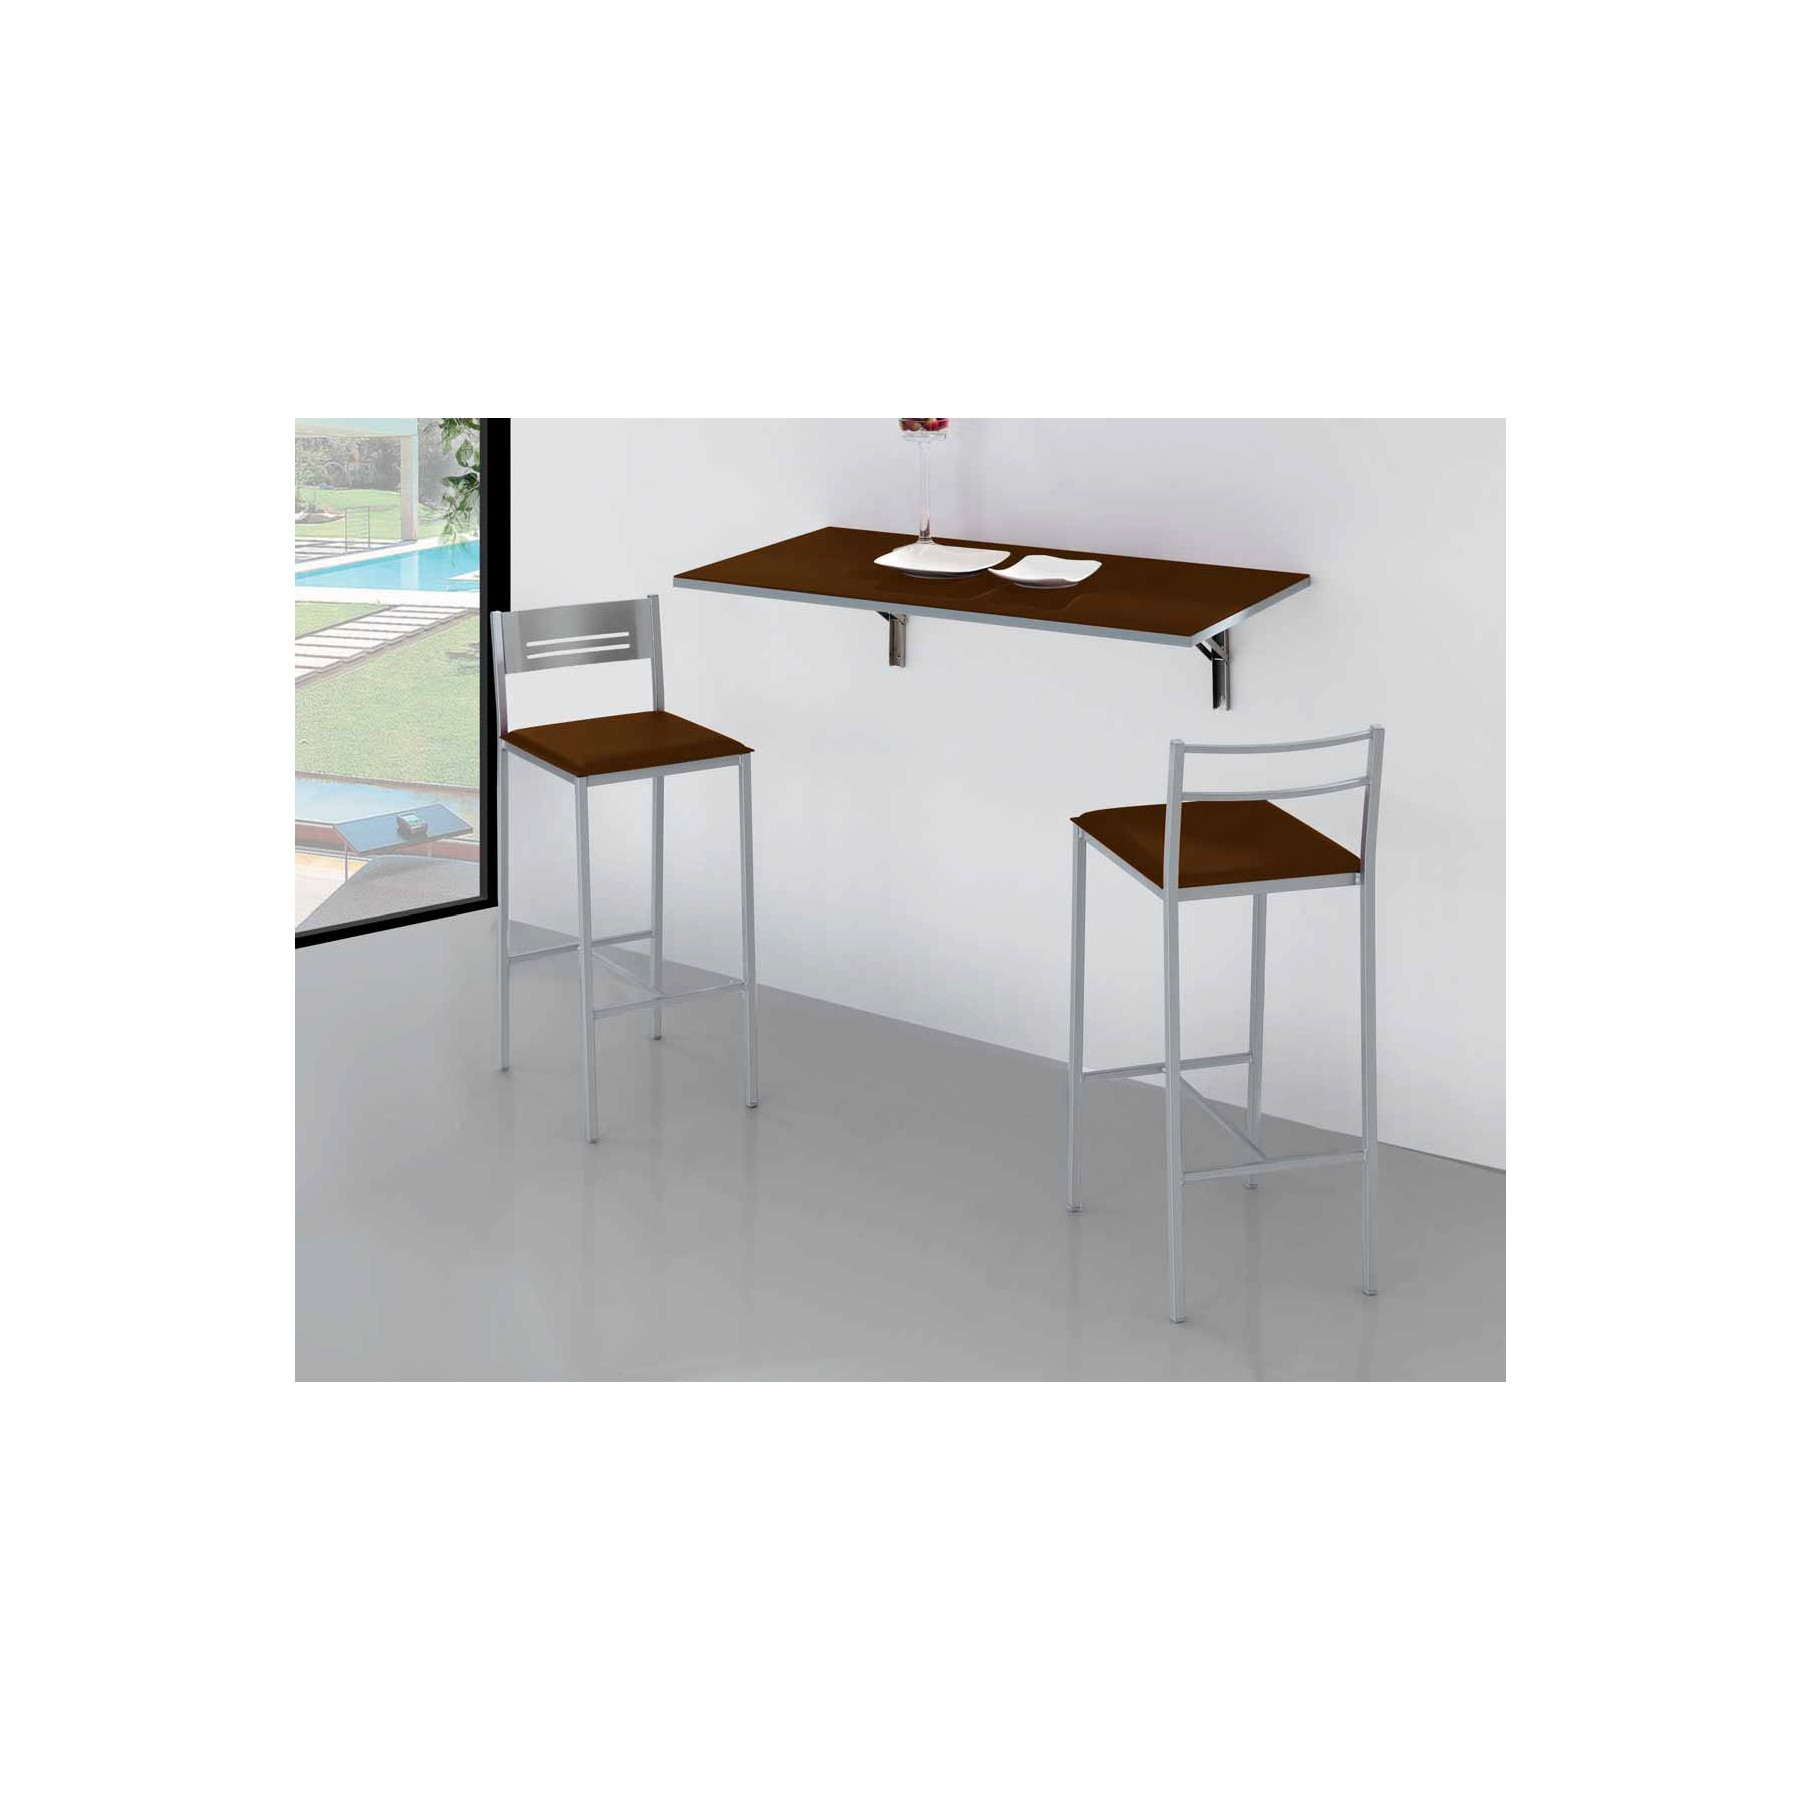 Mesas Plegables De Pared Mesa Plegable Pared Cocina Ffdn Mesa De Cocina De Pared Plegable